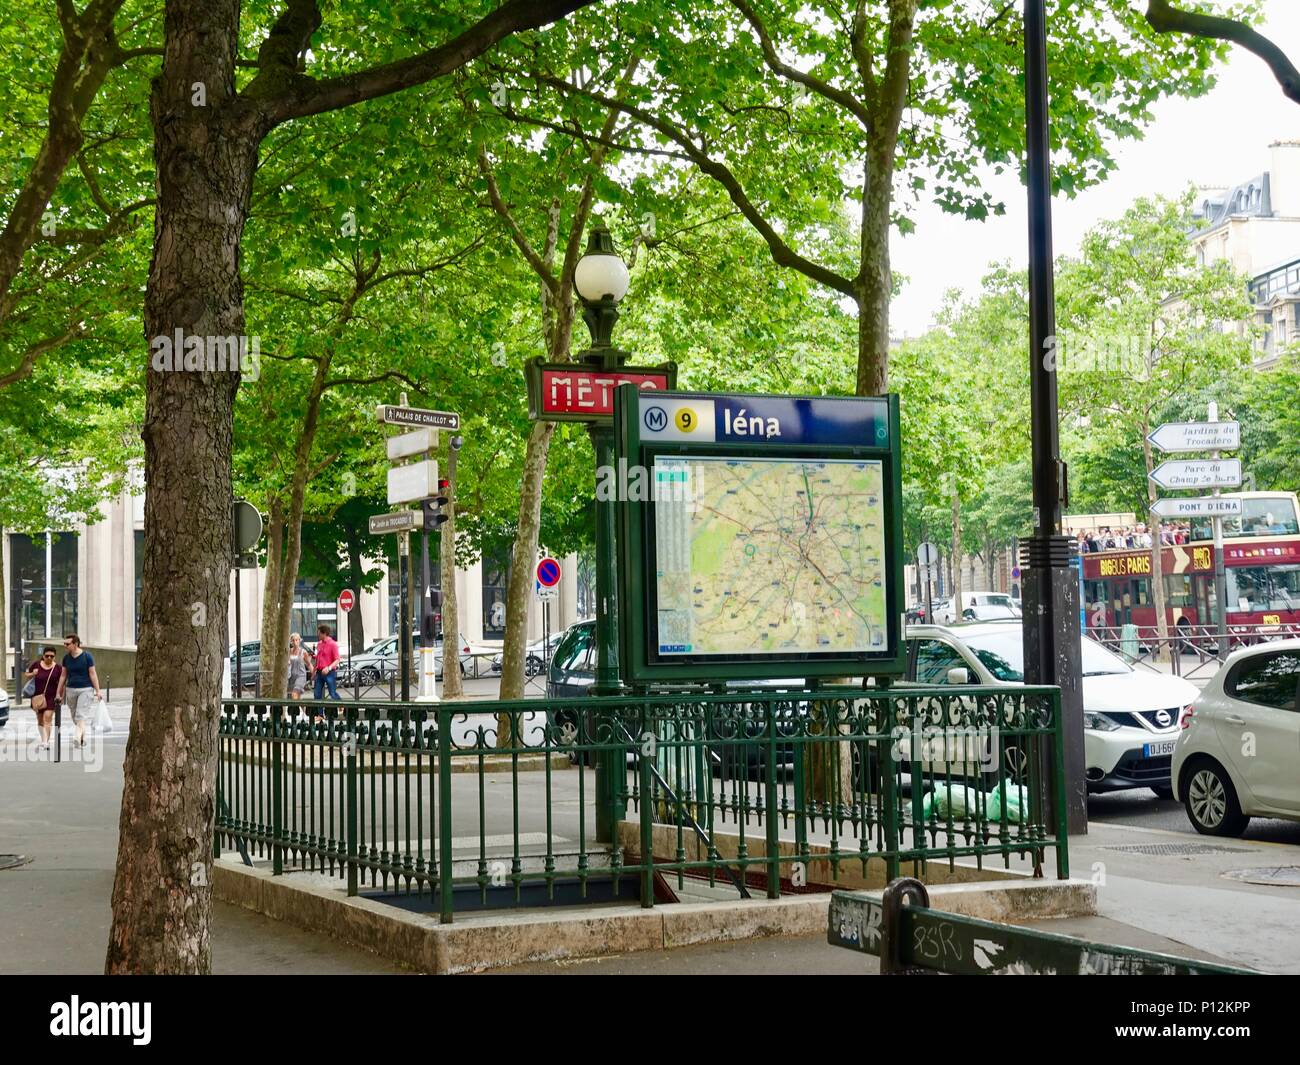 Metro entrance at Place d'Iena, with map of the area, Paris, France Stock Photo